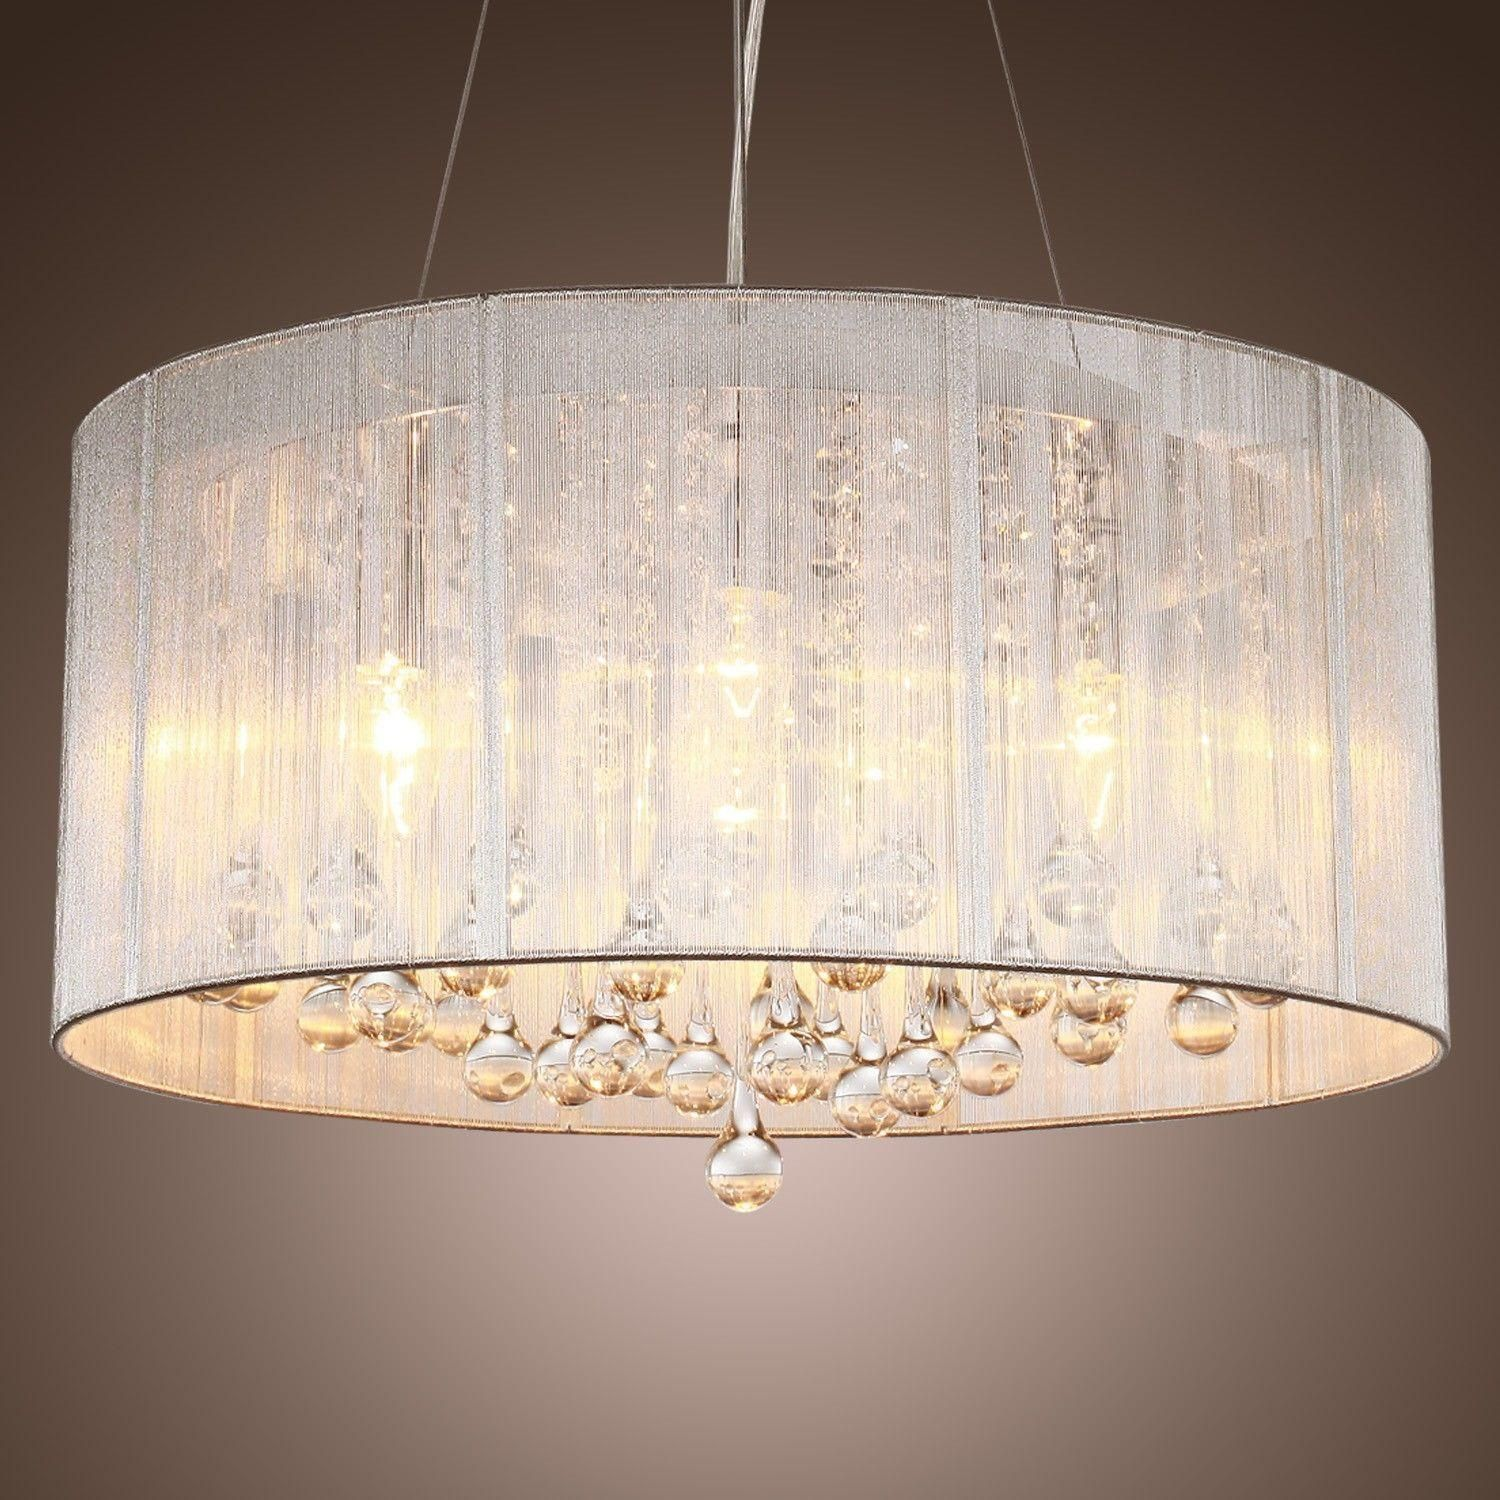 Cool And Modern Extra Large Drum Lamp Shade In 2020 Drum Lampshade Drum Pendant Lamp Lamp Shade